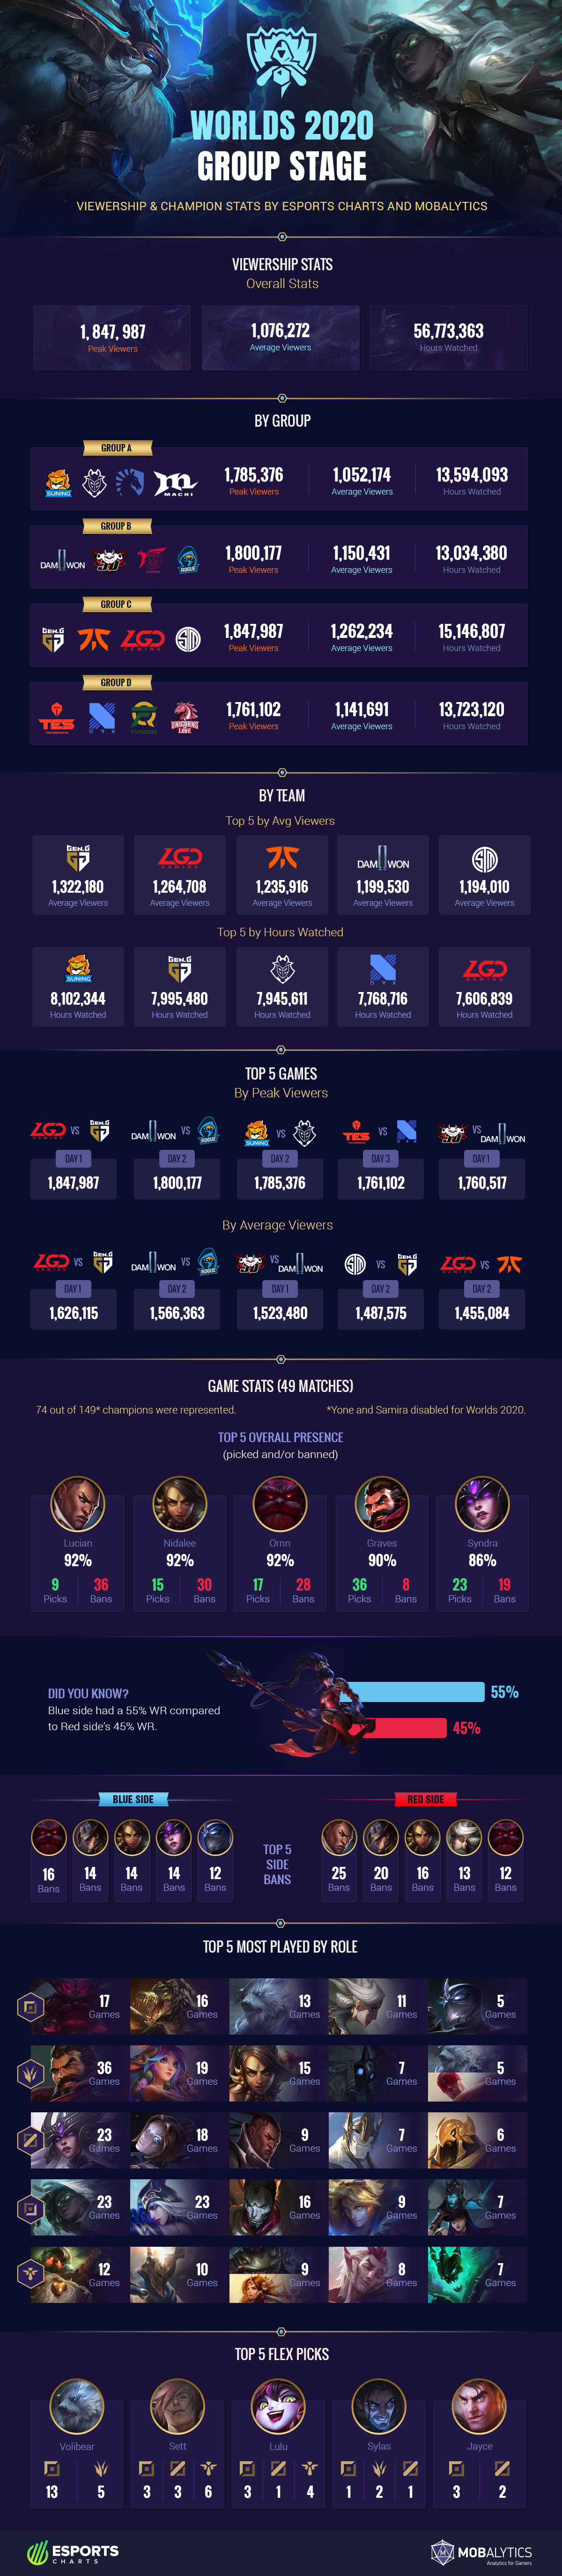 Worlds 2020 Group Stage Viewership and Champion Stats